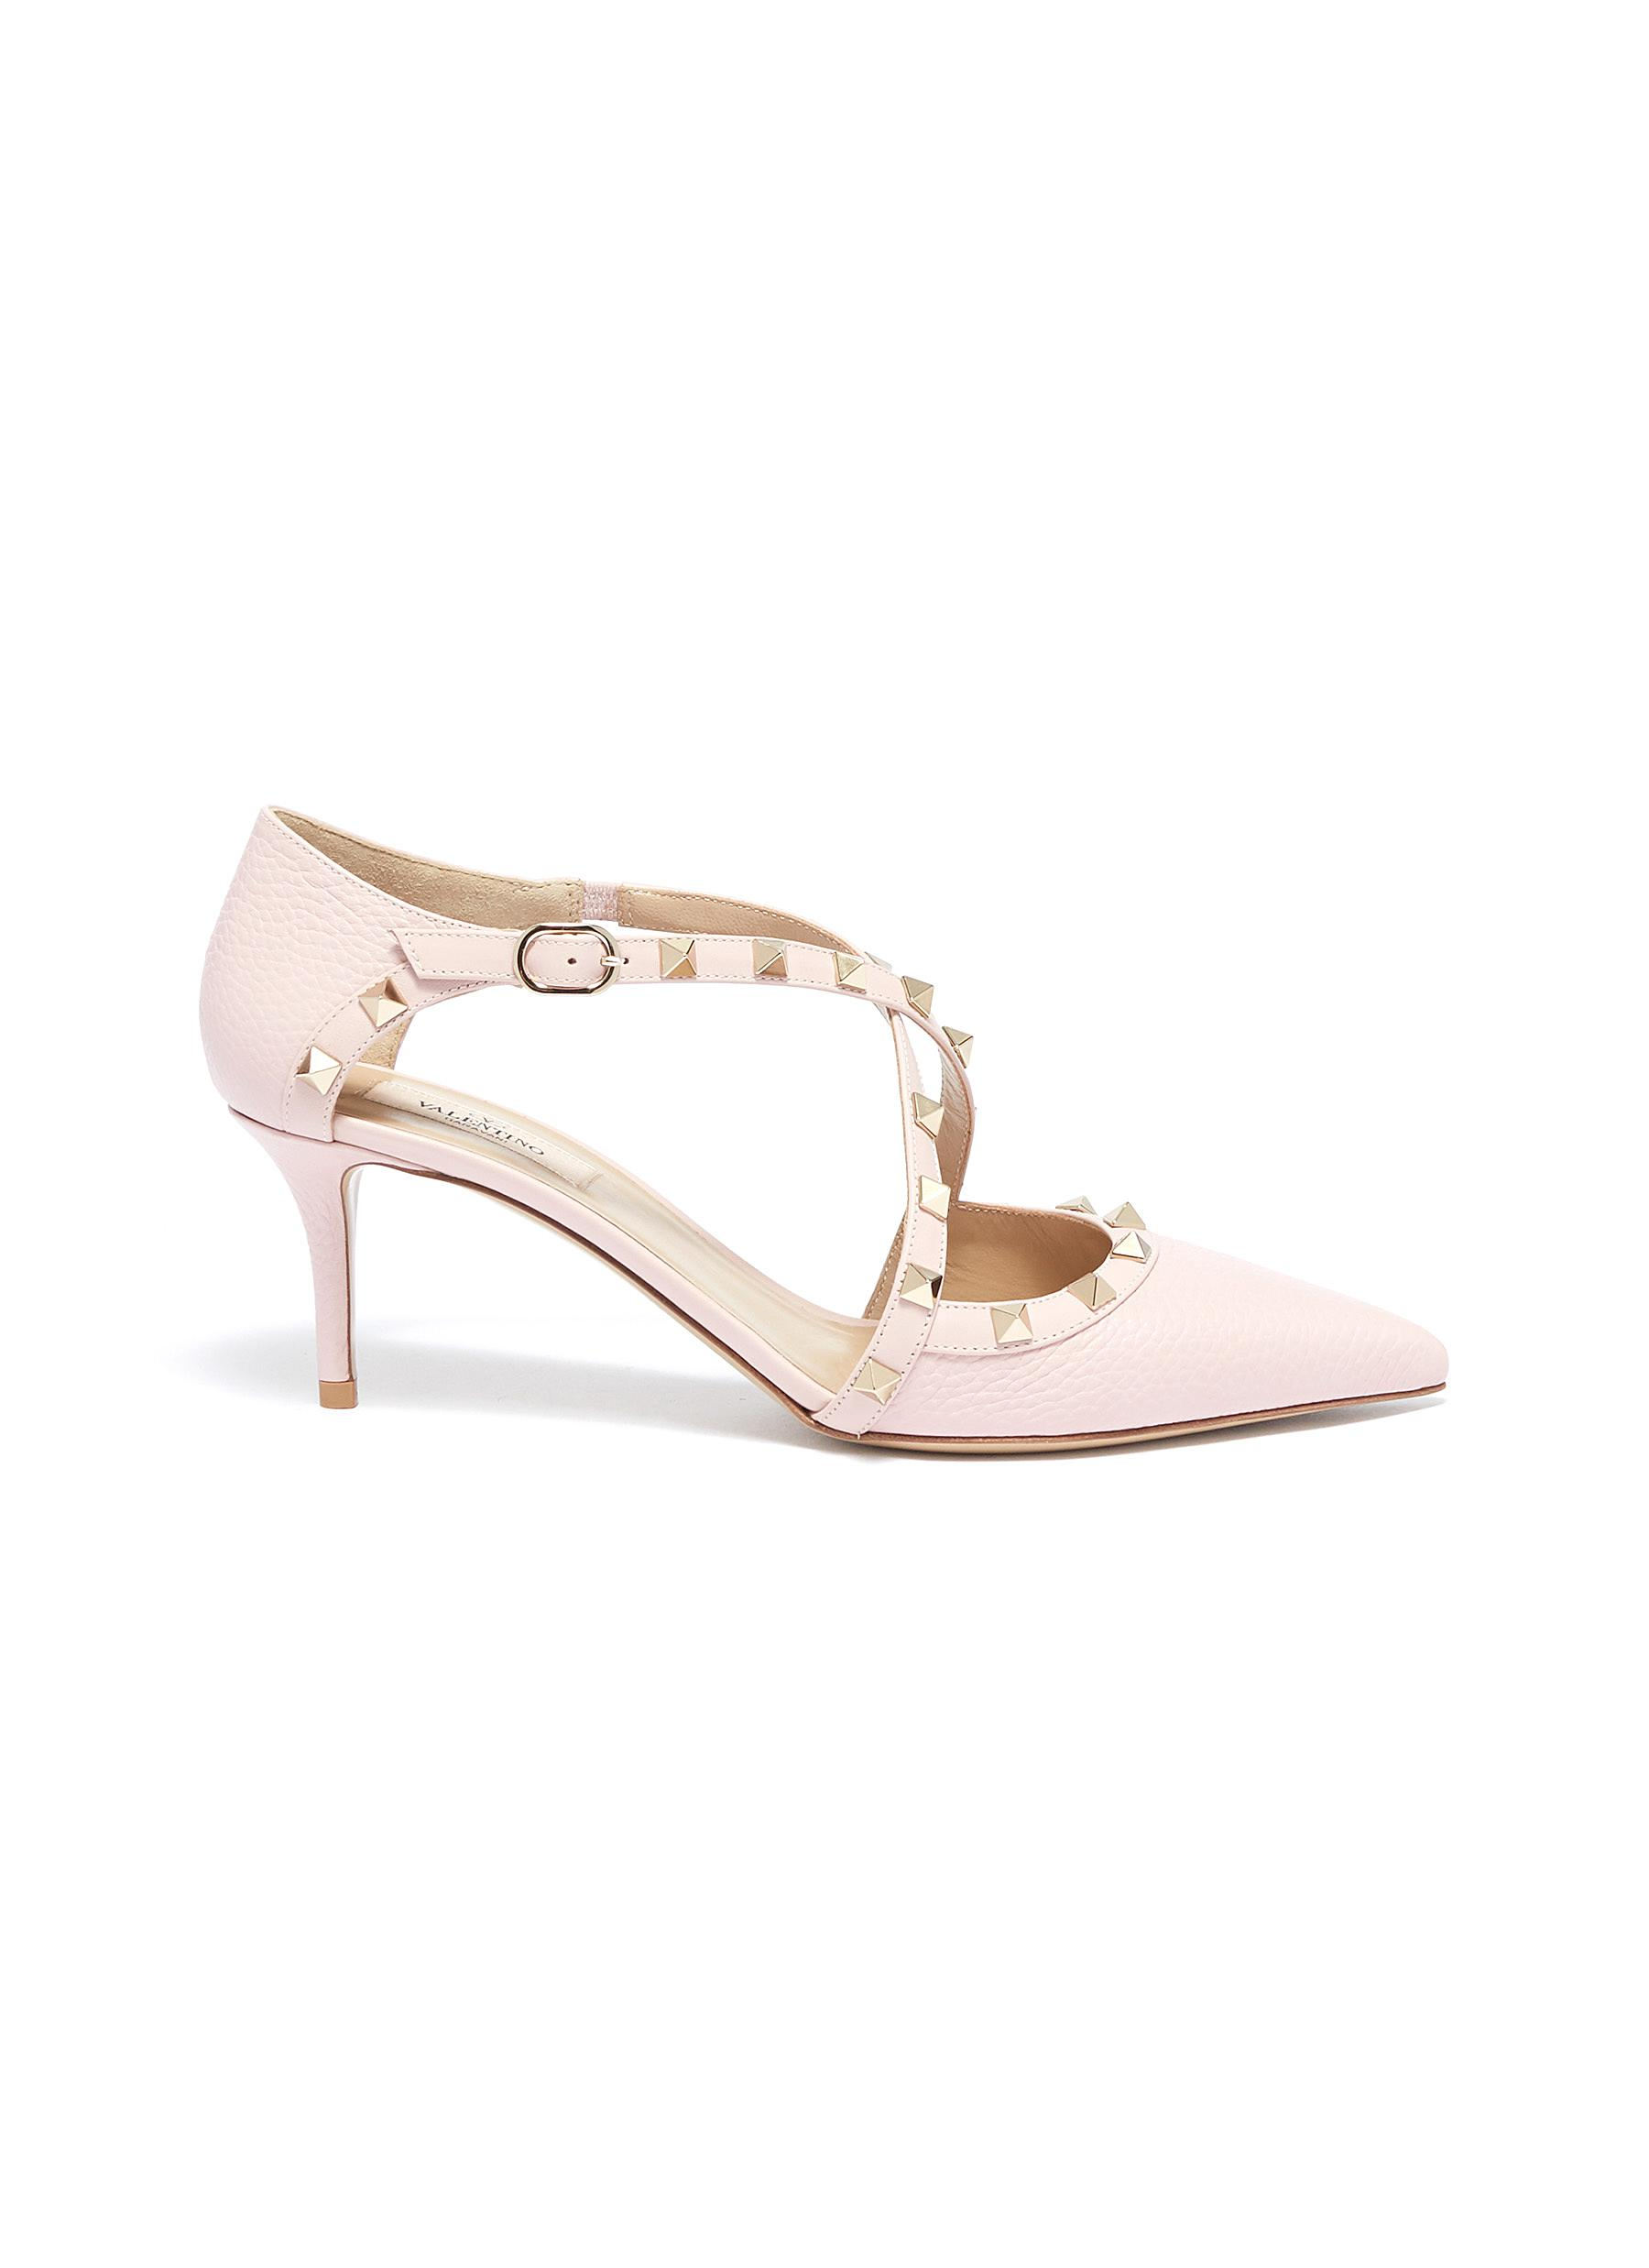 Rockstud cross strap leather dOrsay pumps by Valentino